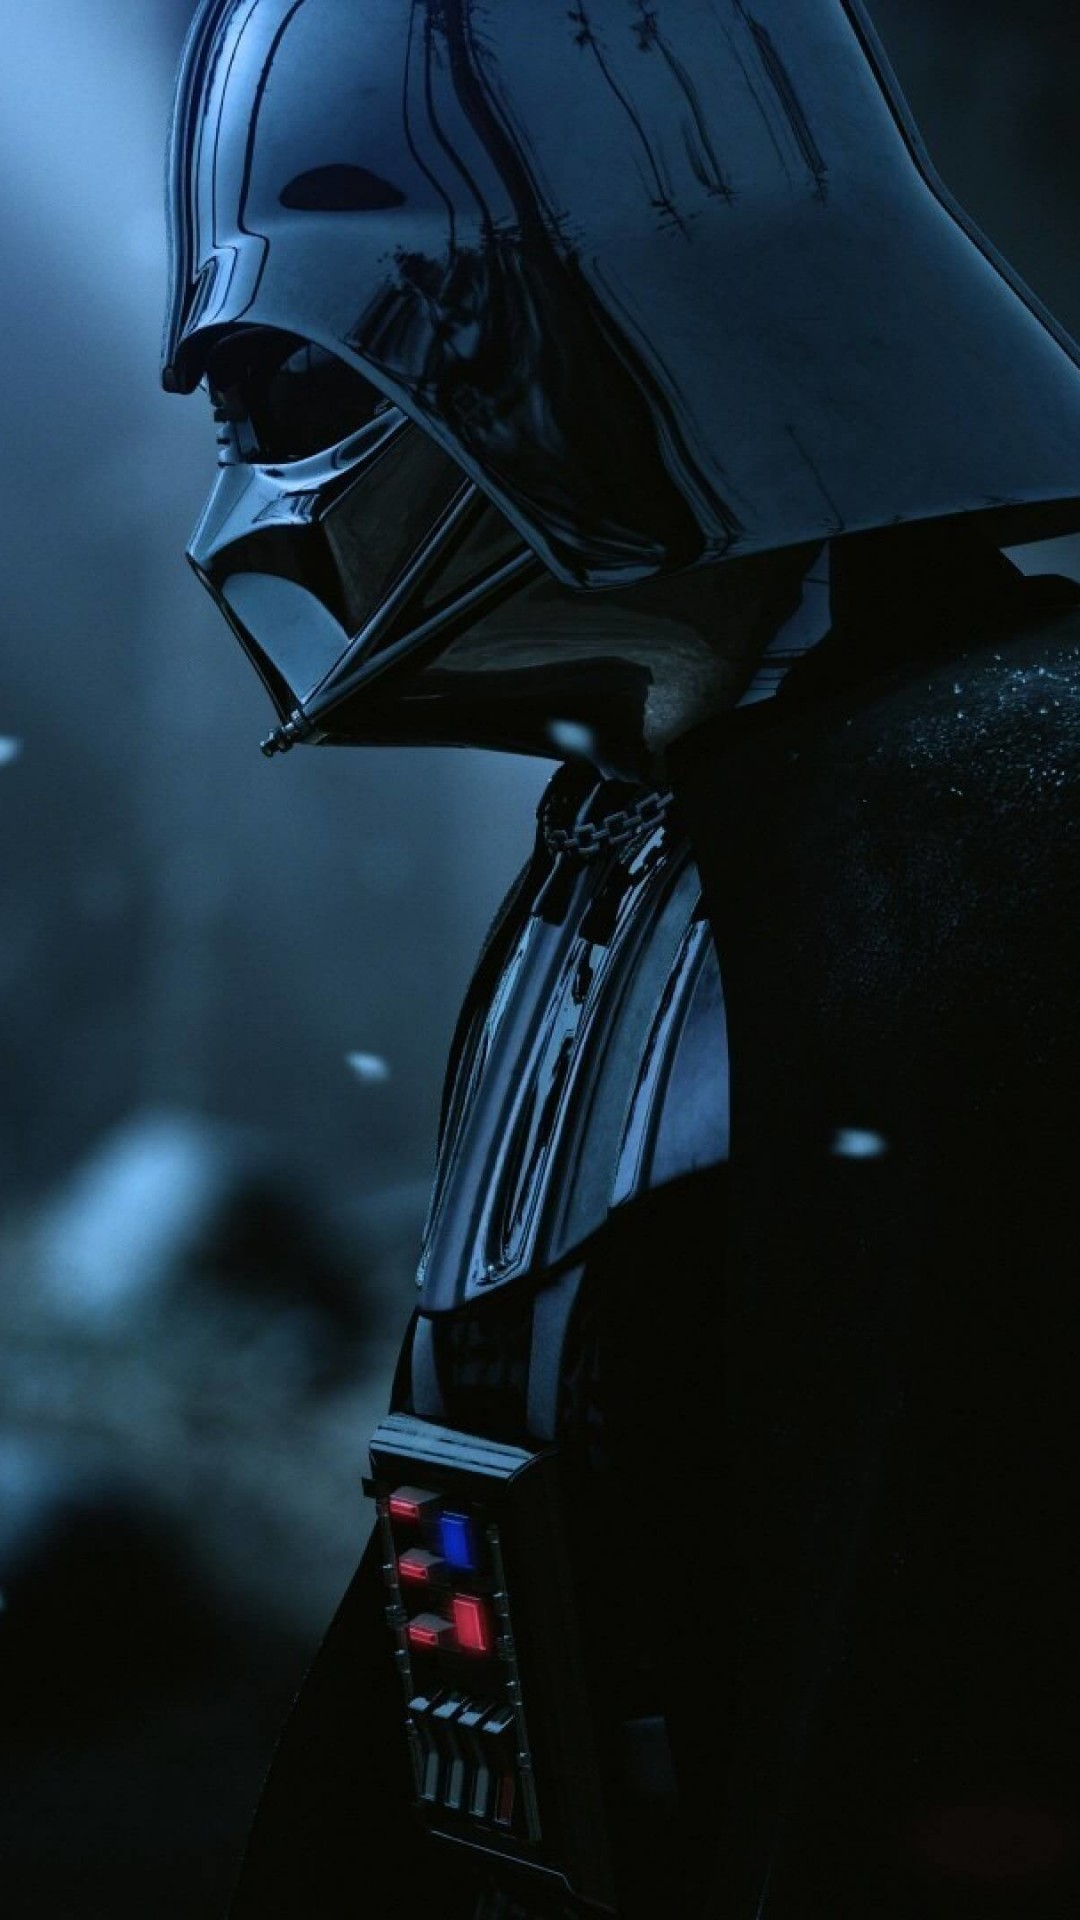 Darth Vader - The Force Unleashed 2 Wallpaper for SAMSUNG Galaxy S5